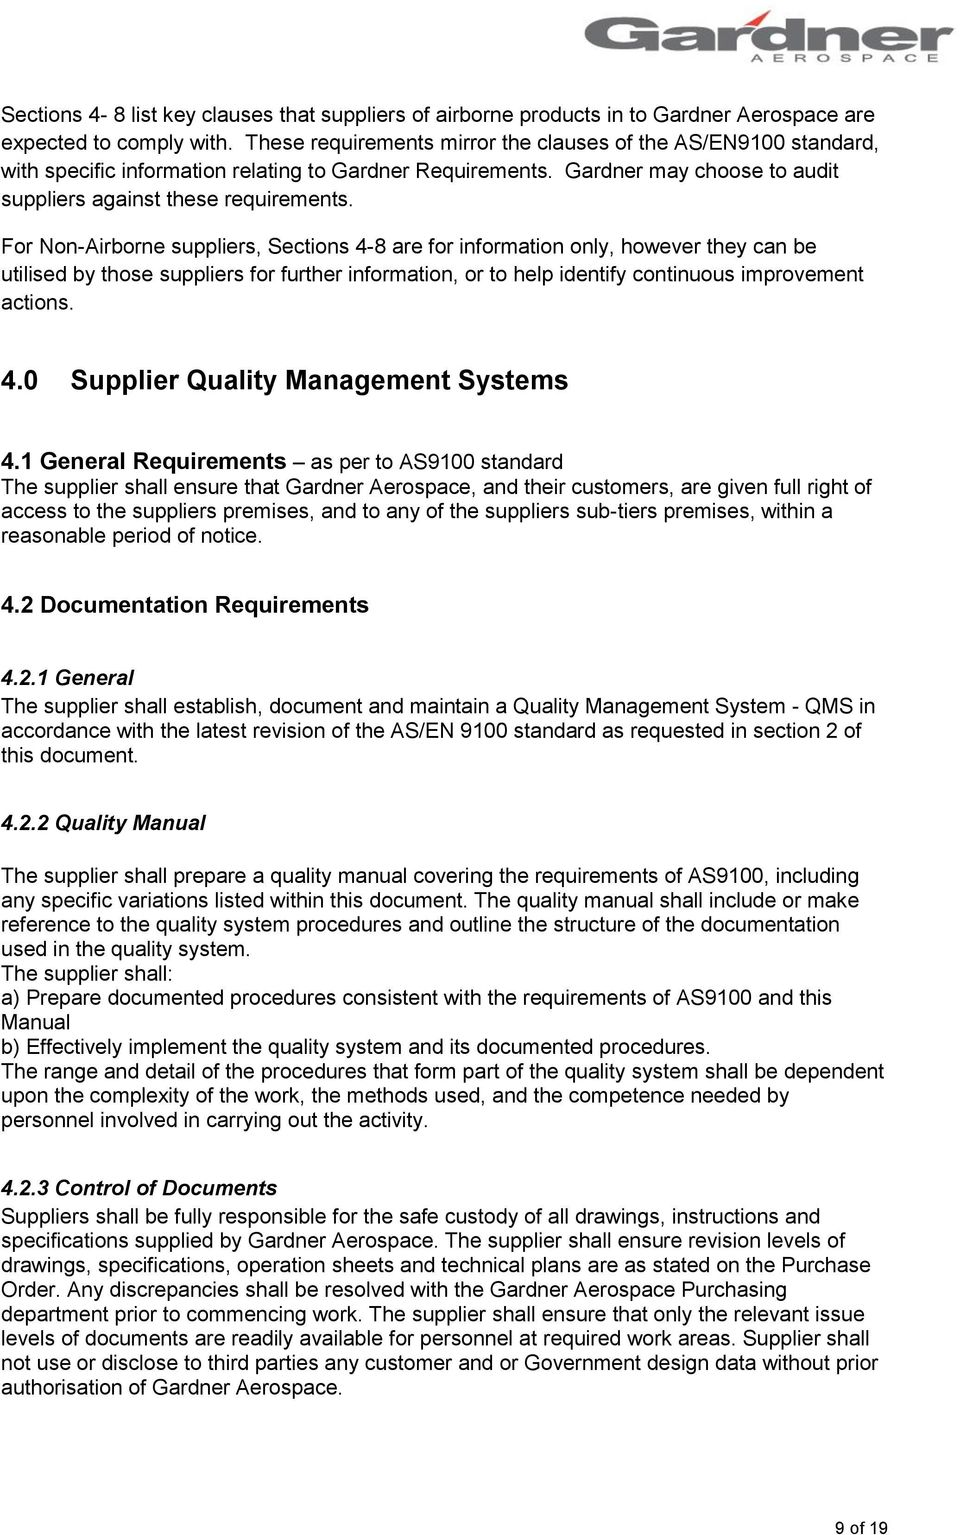 For Non-Airborne suppliers, Sections 4-8 are for information only, however they can be utilised by those suppliers for further information, or to help identify continuous improvement actions. 4.0 Supplier Quality Management Systems 4.